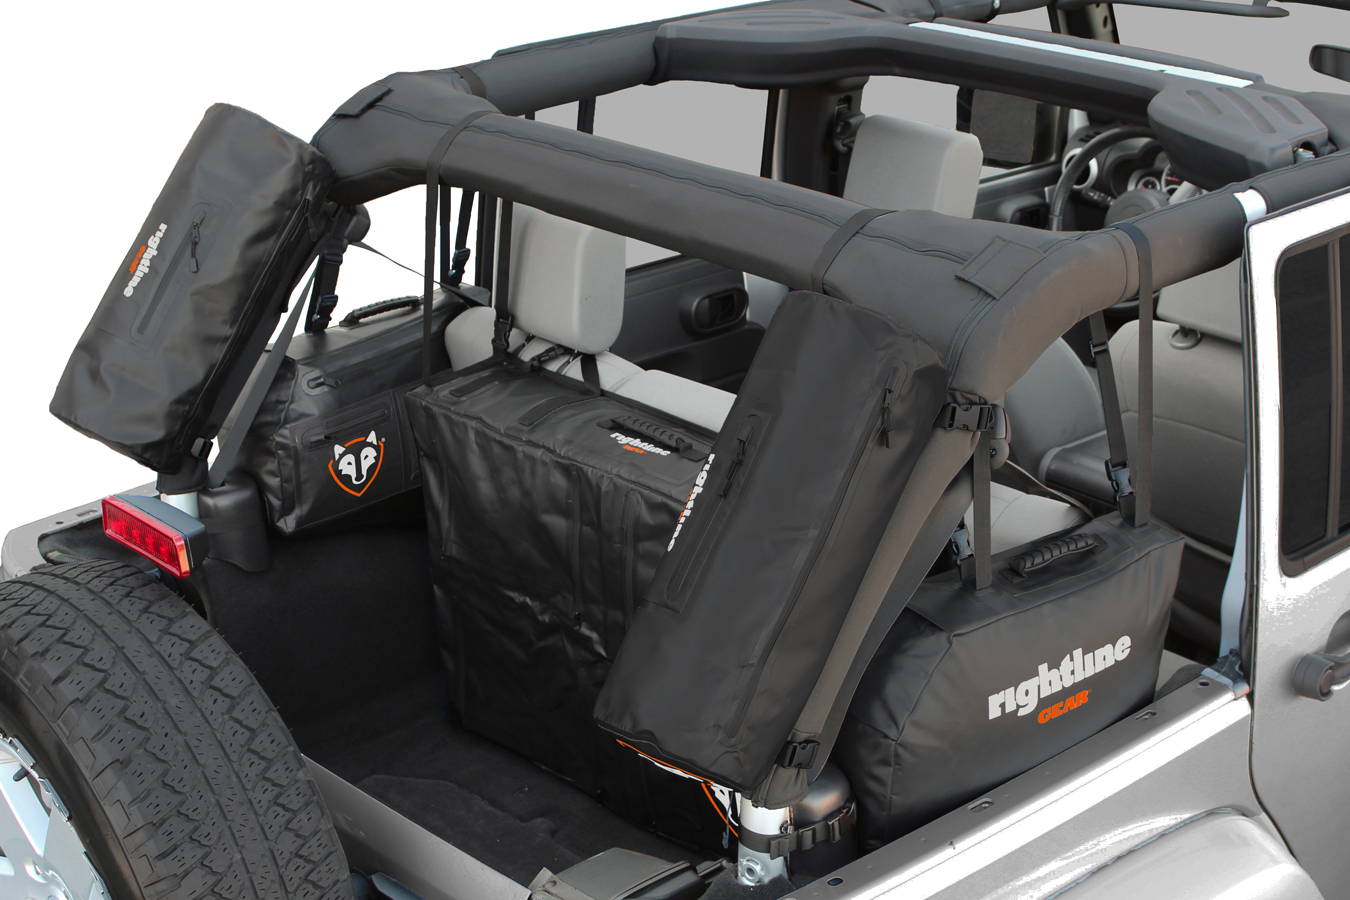 Jeep Wrangler Colors >> Rightline Jeep Storage Bags - Jeep Wrangler Cargo Solutions Ship Free